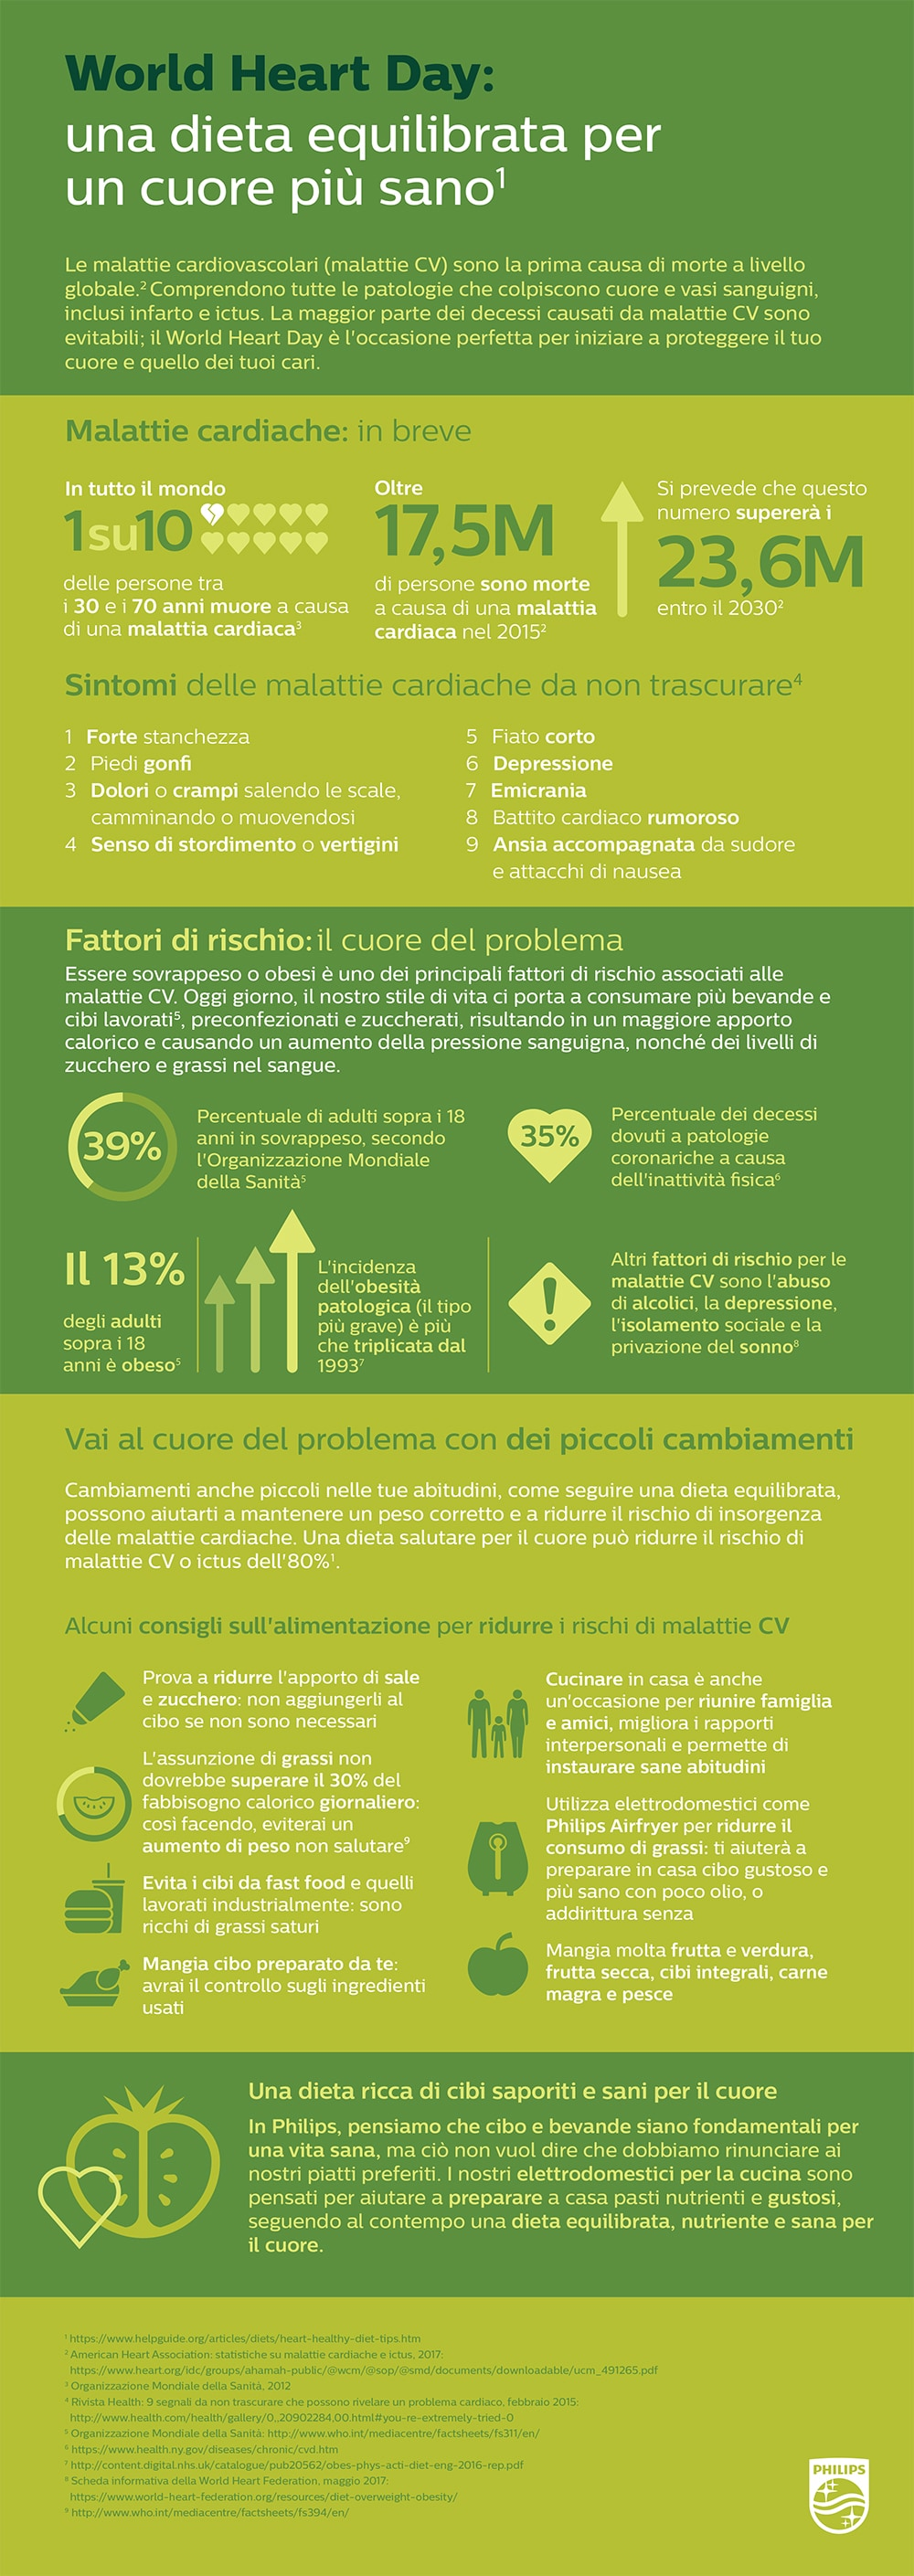 World-Heart-Day-Infografica